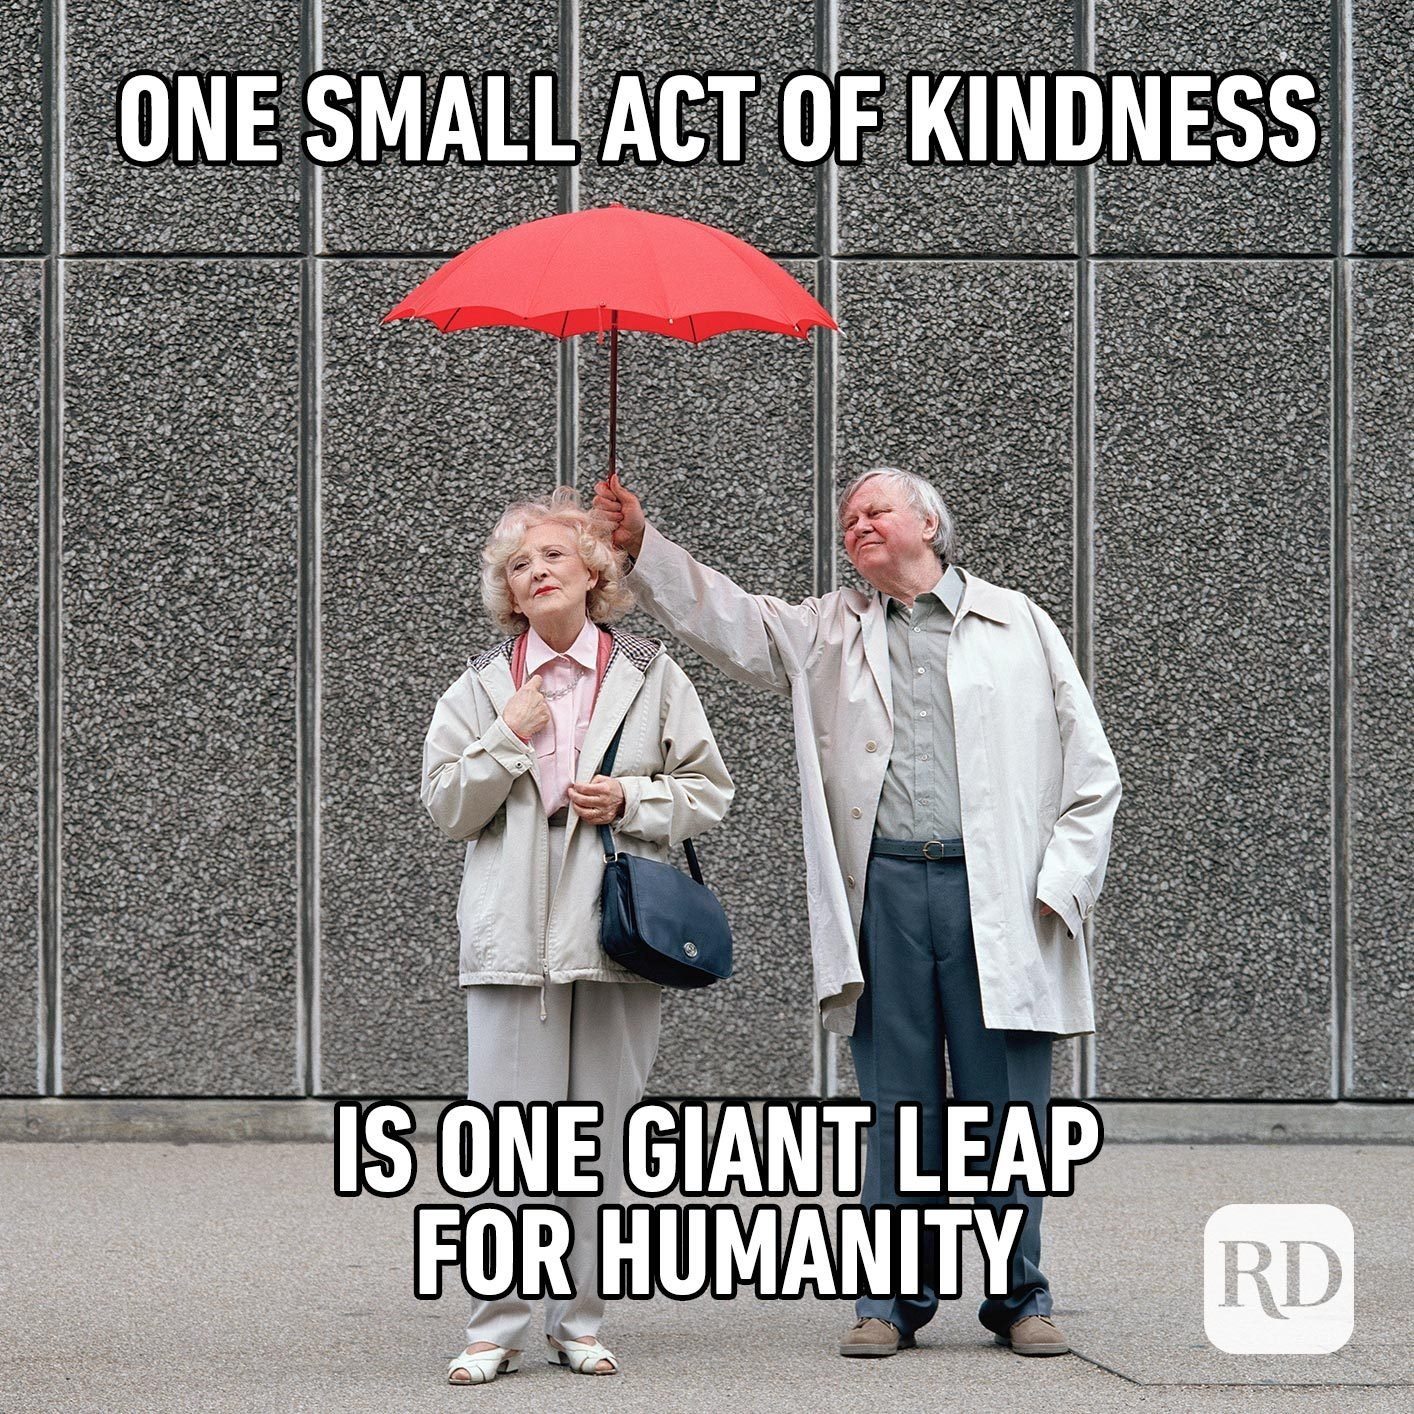 Man holding umbrella for woman. Meme text: One small act of kindness is one giant leap for humanity